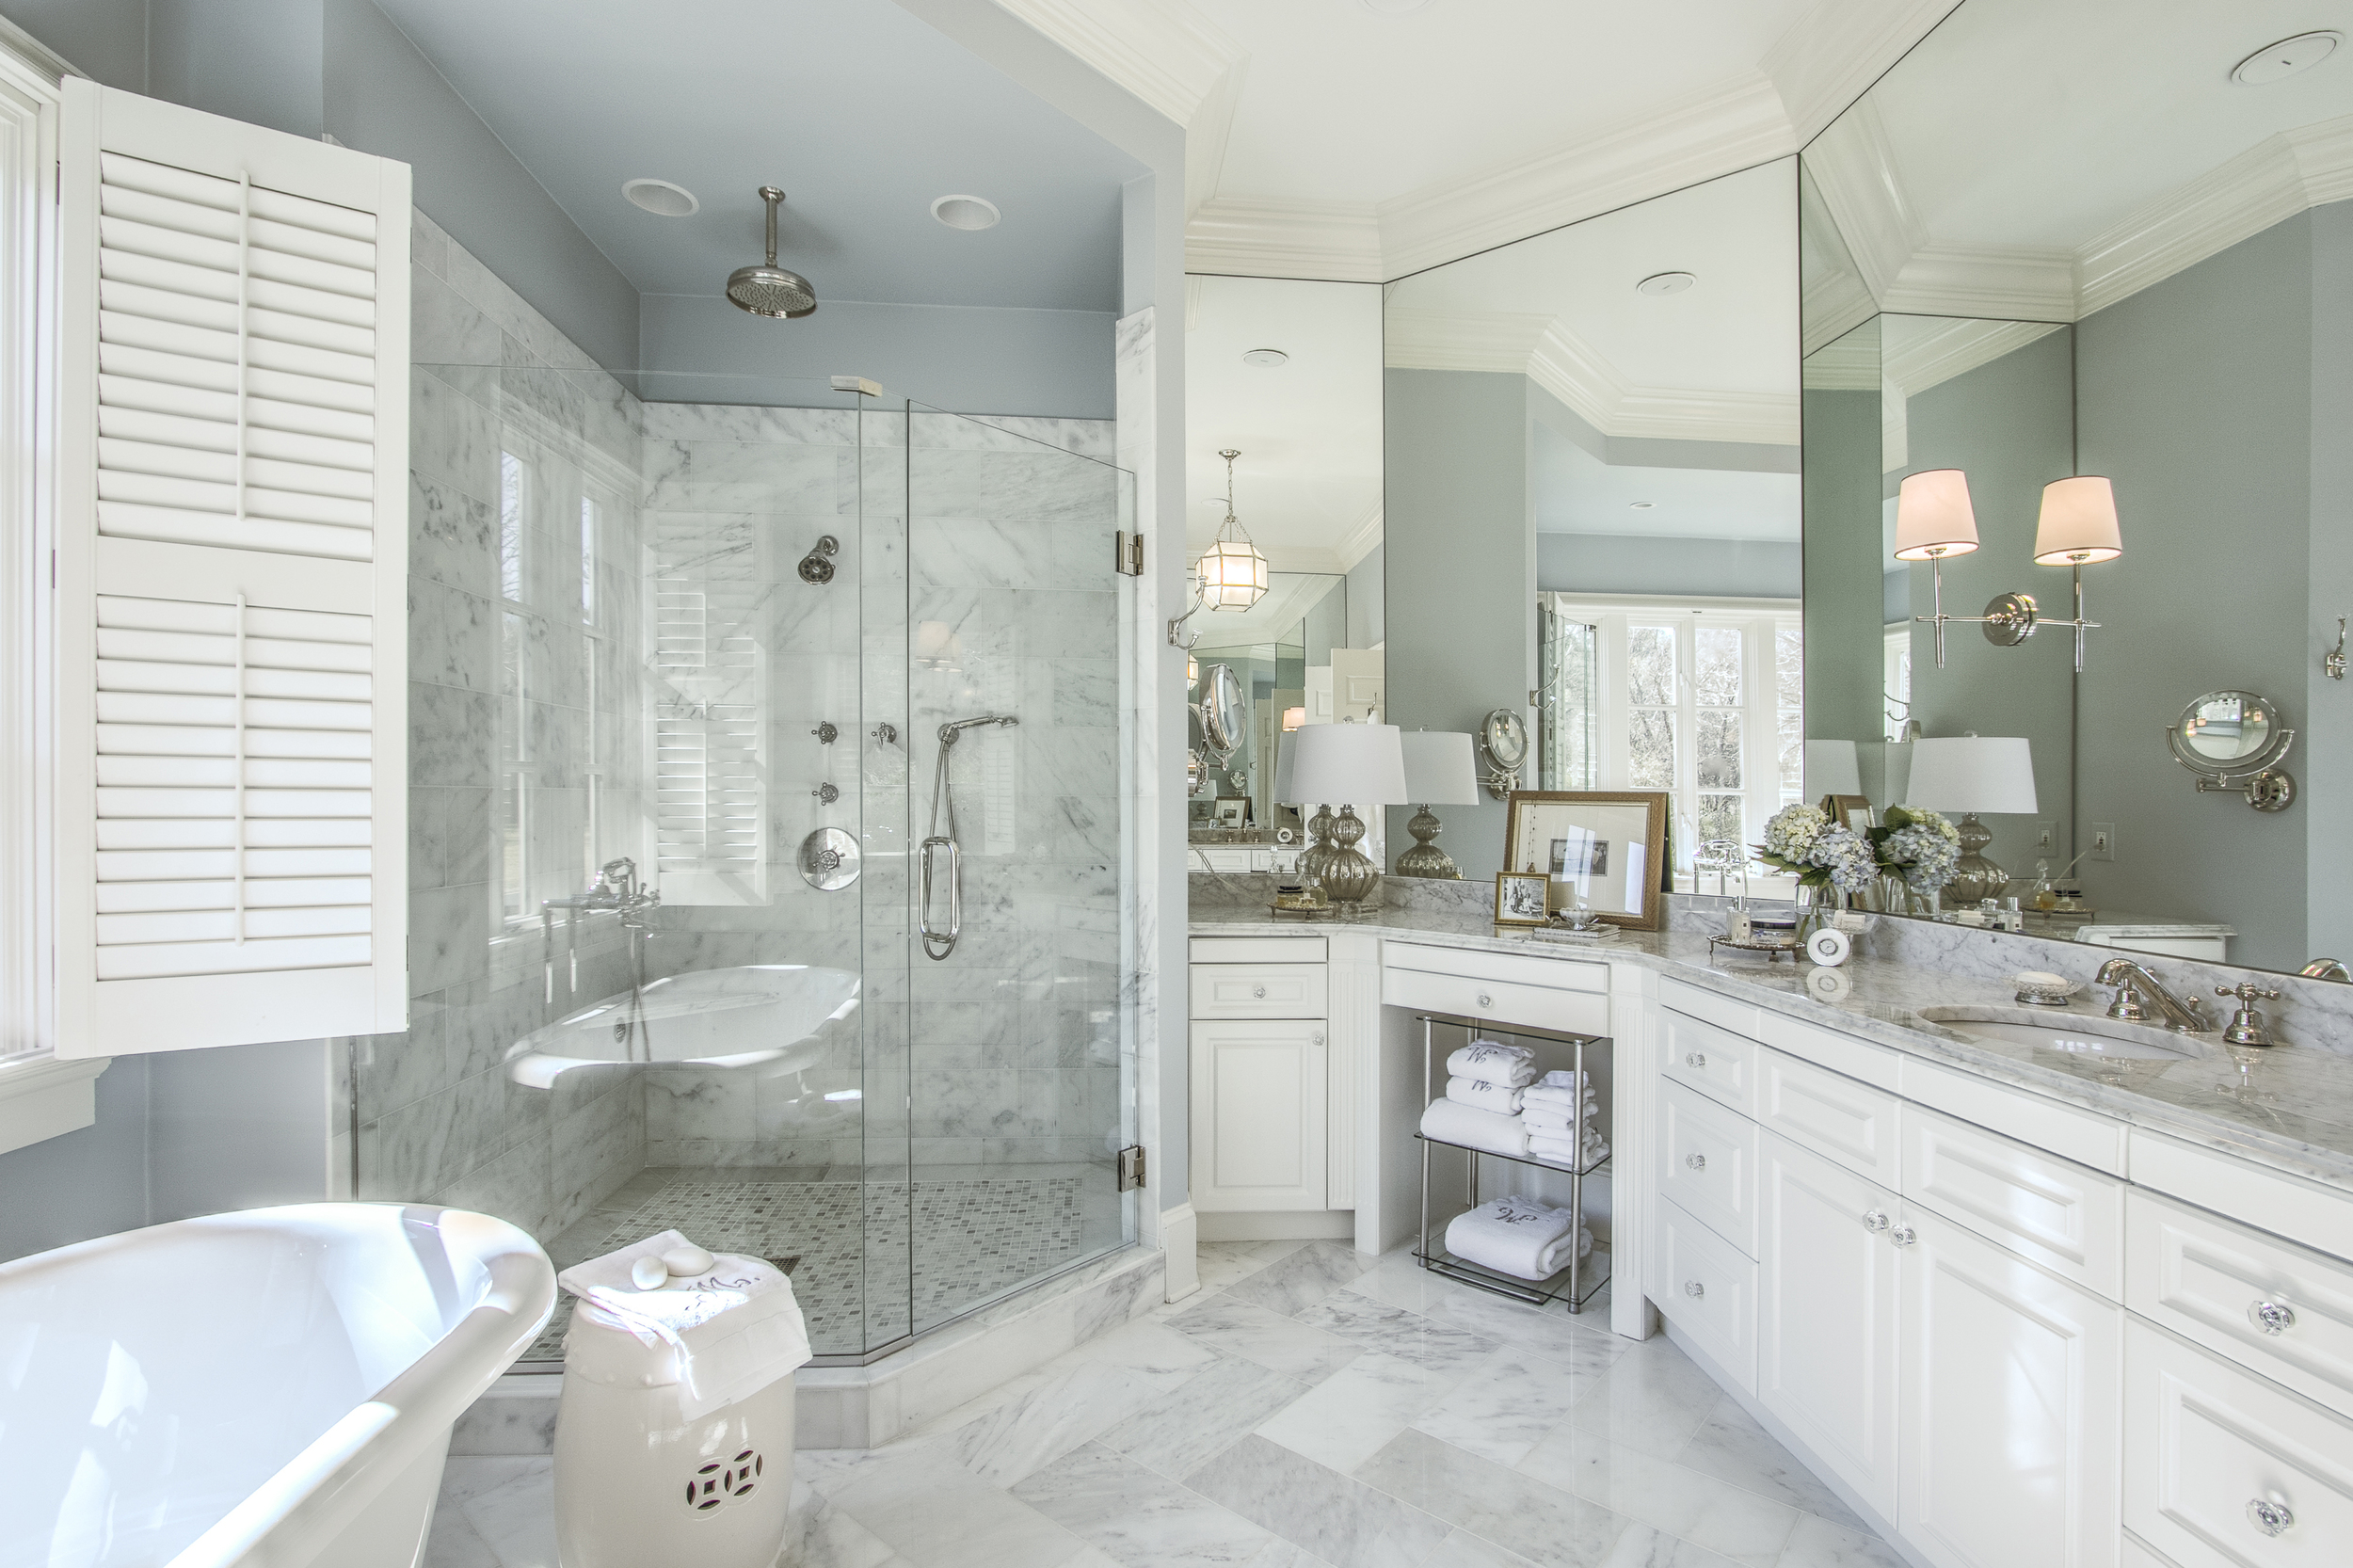 Master bath with marble countertops